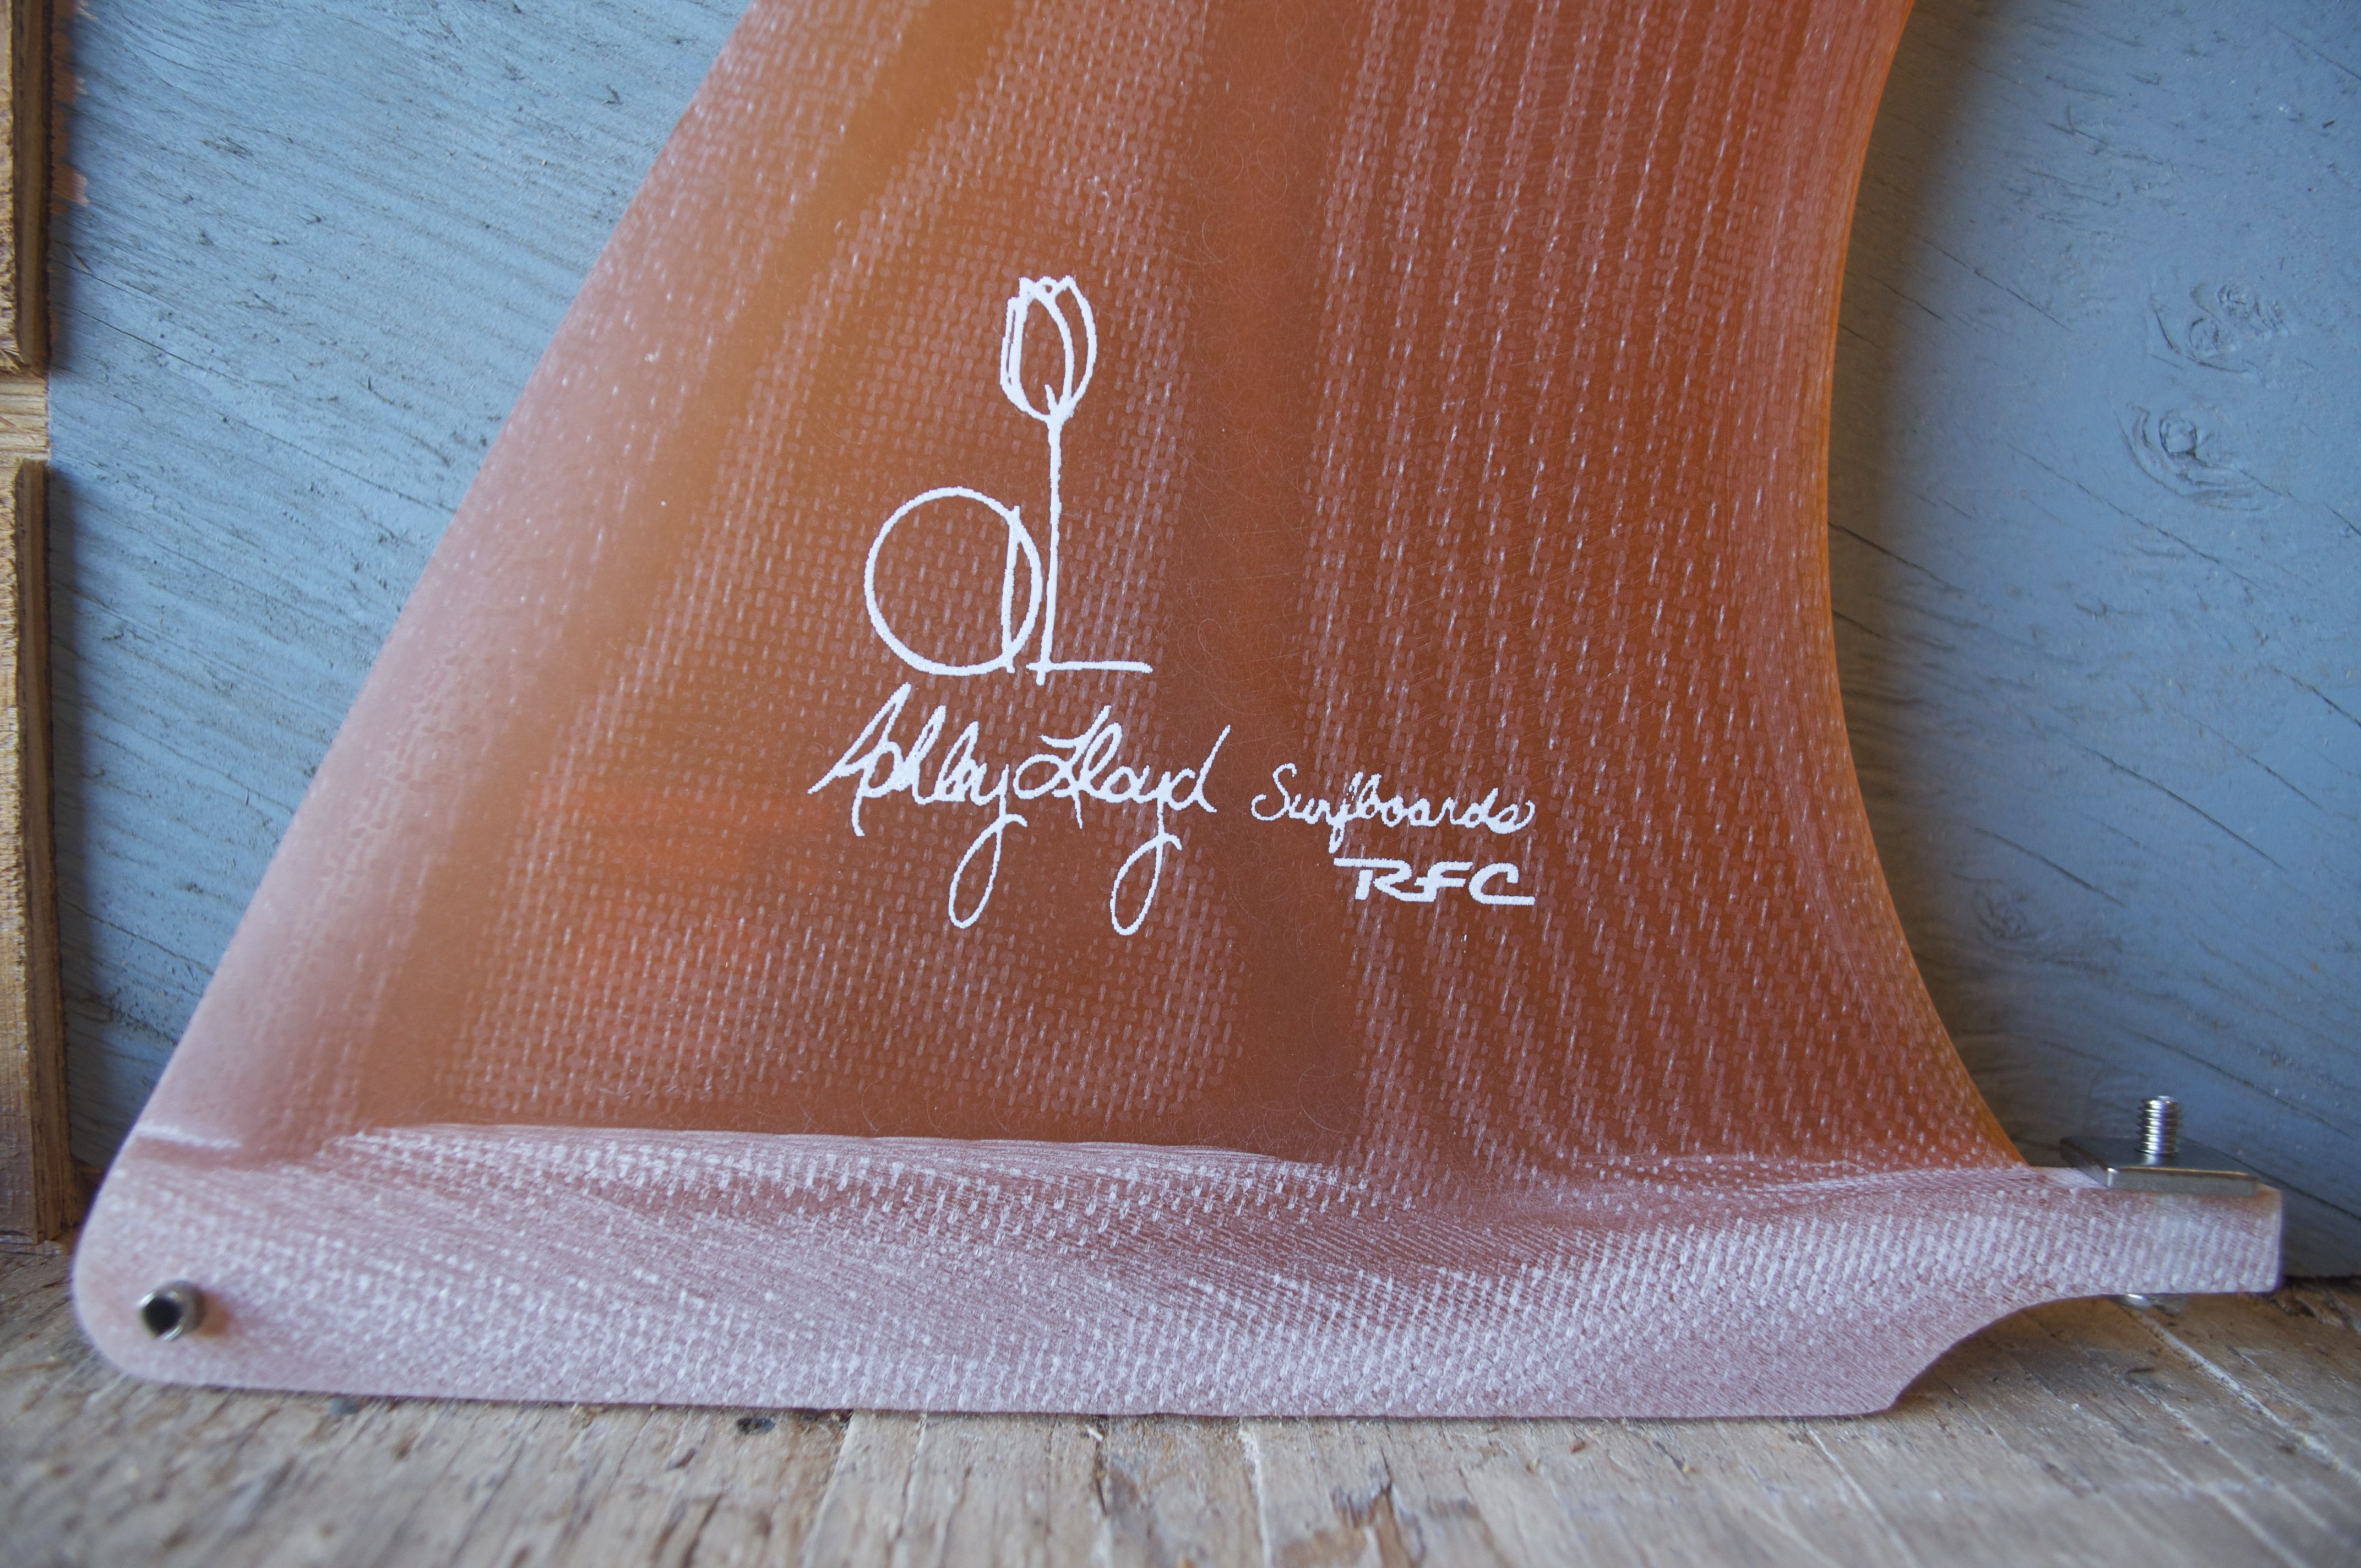 Got to shoot some new fins by Ashley Lloyd Surfboards.